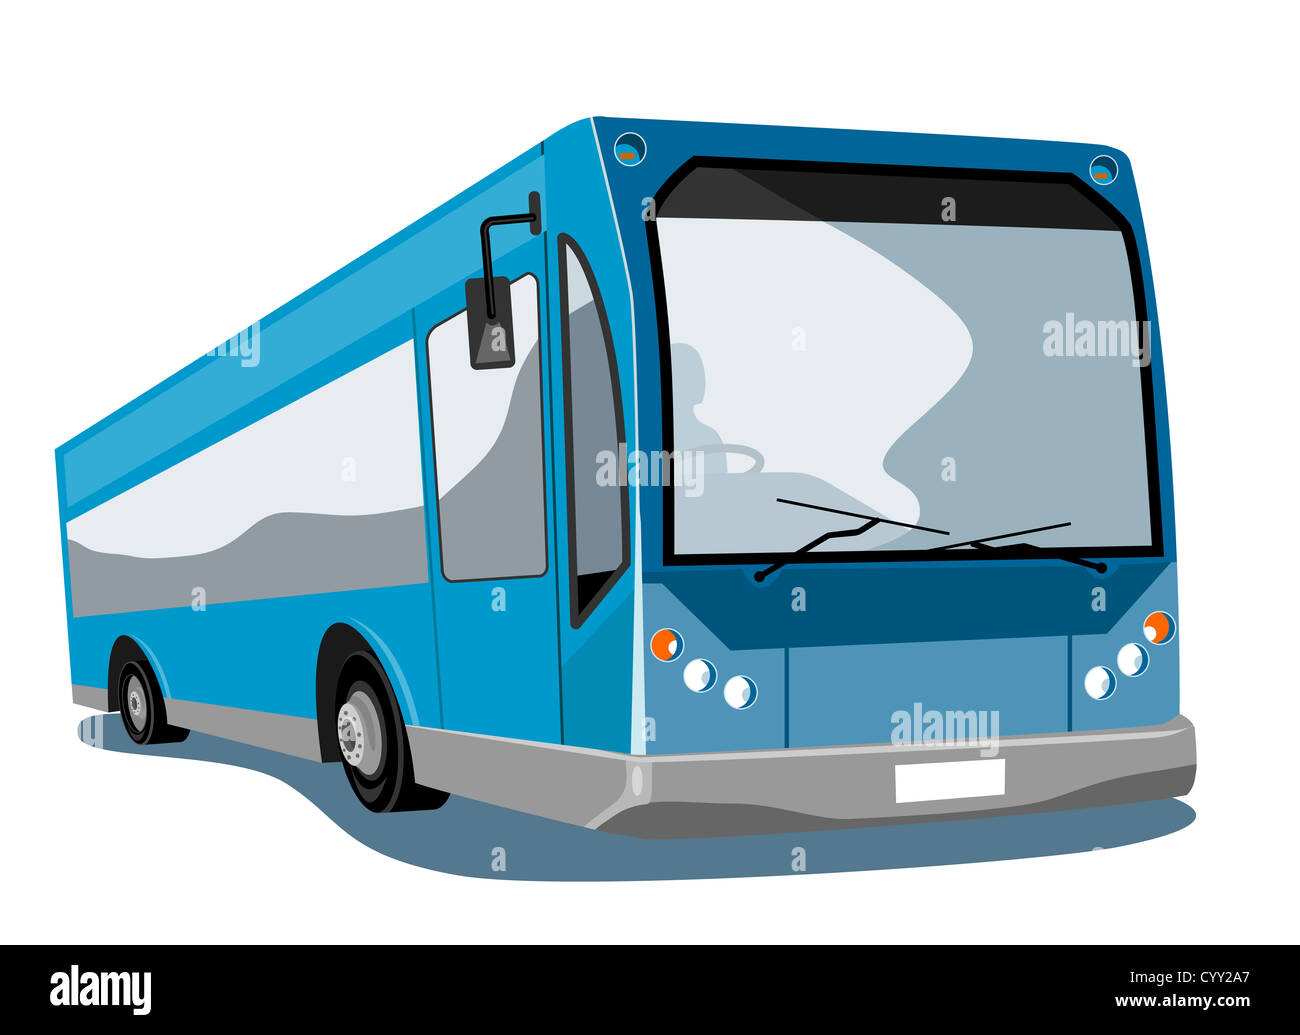 Illustration of a shuttle coach bus on isolated background - Stock Image